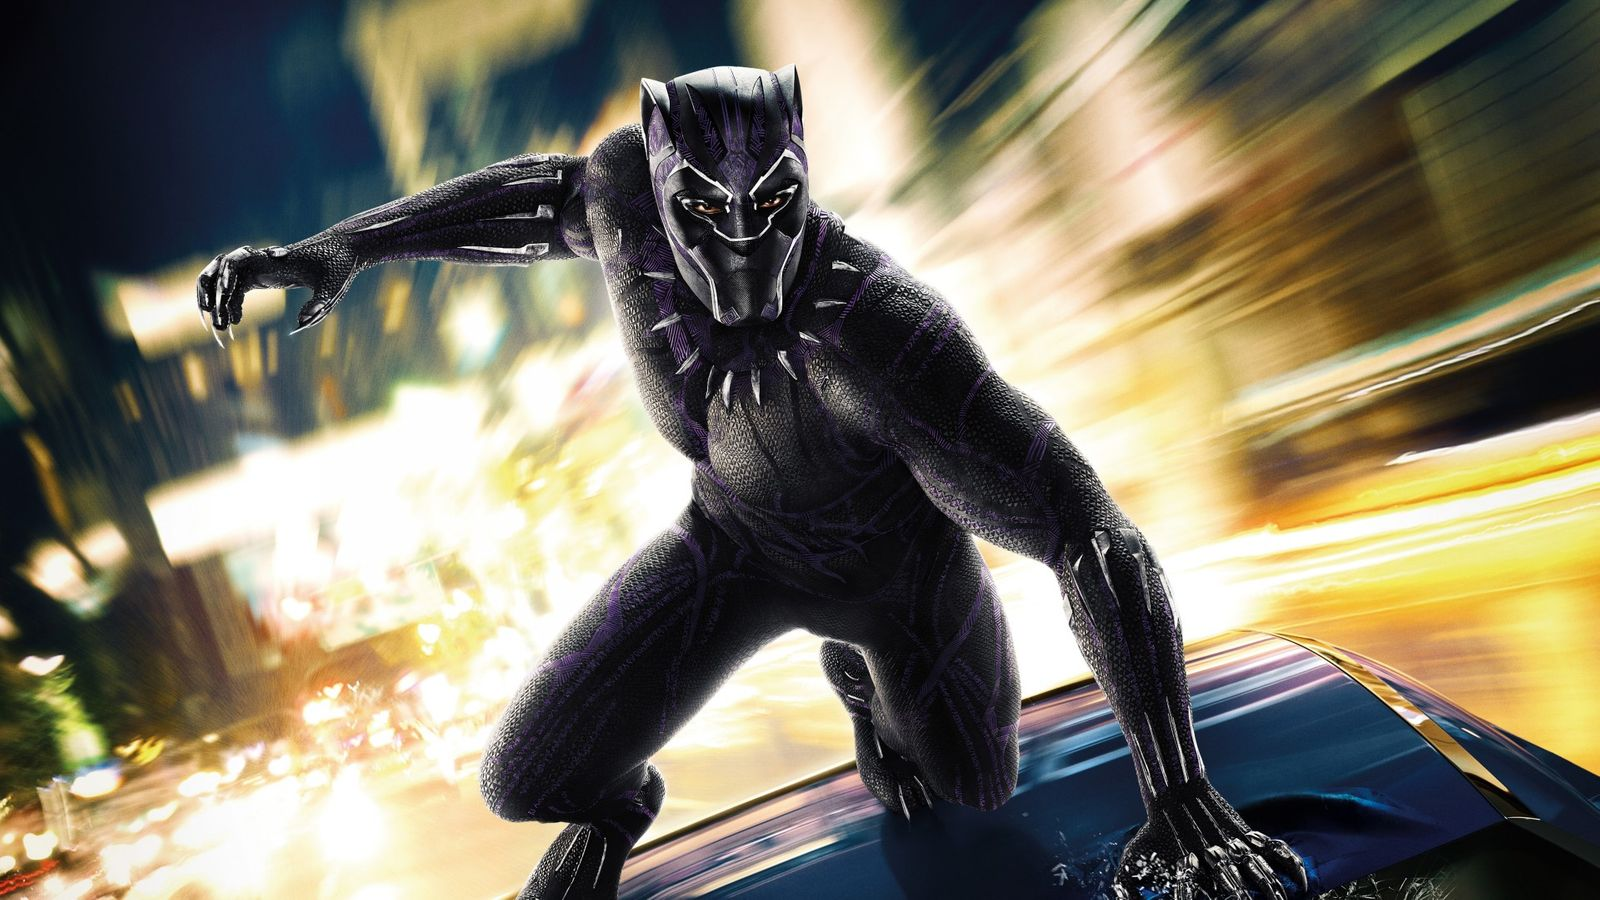 Black Panther Wallpapers 45 images   Wallpaper Stream 1600x900